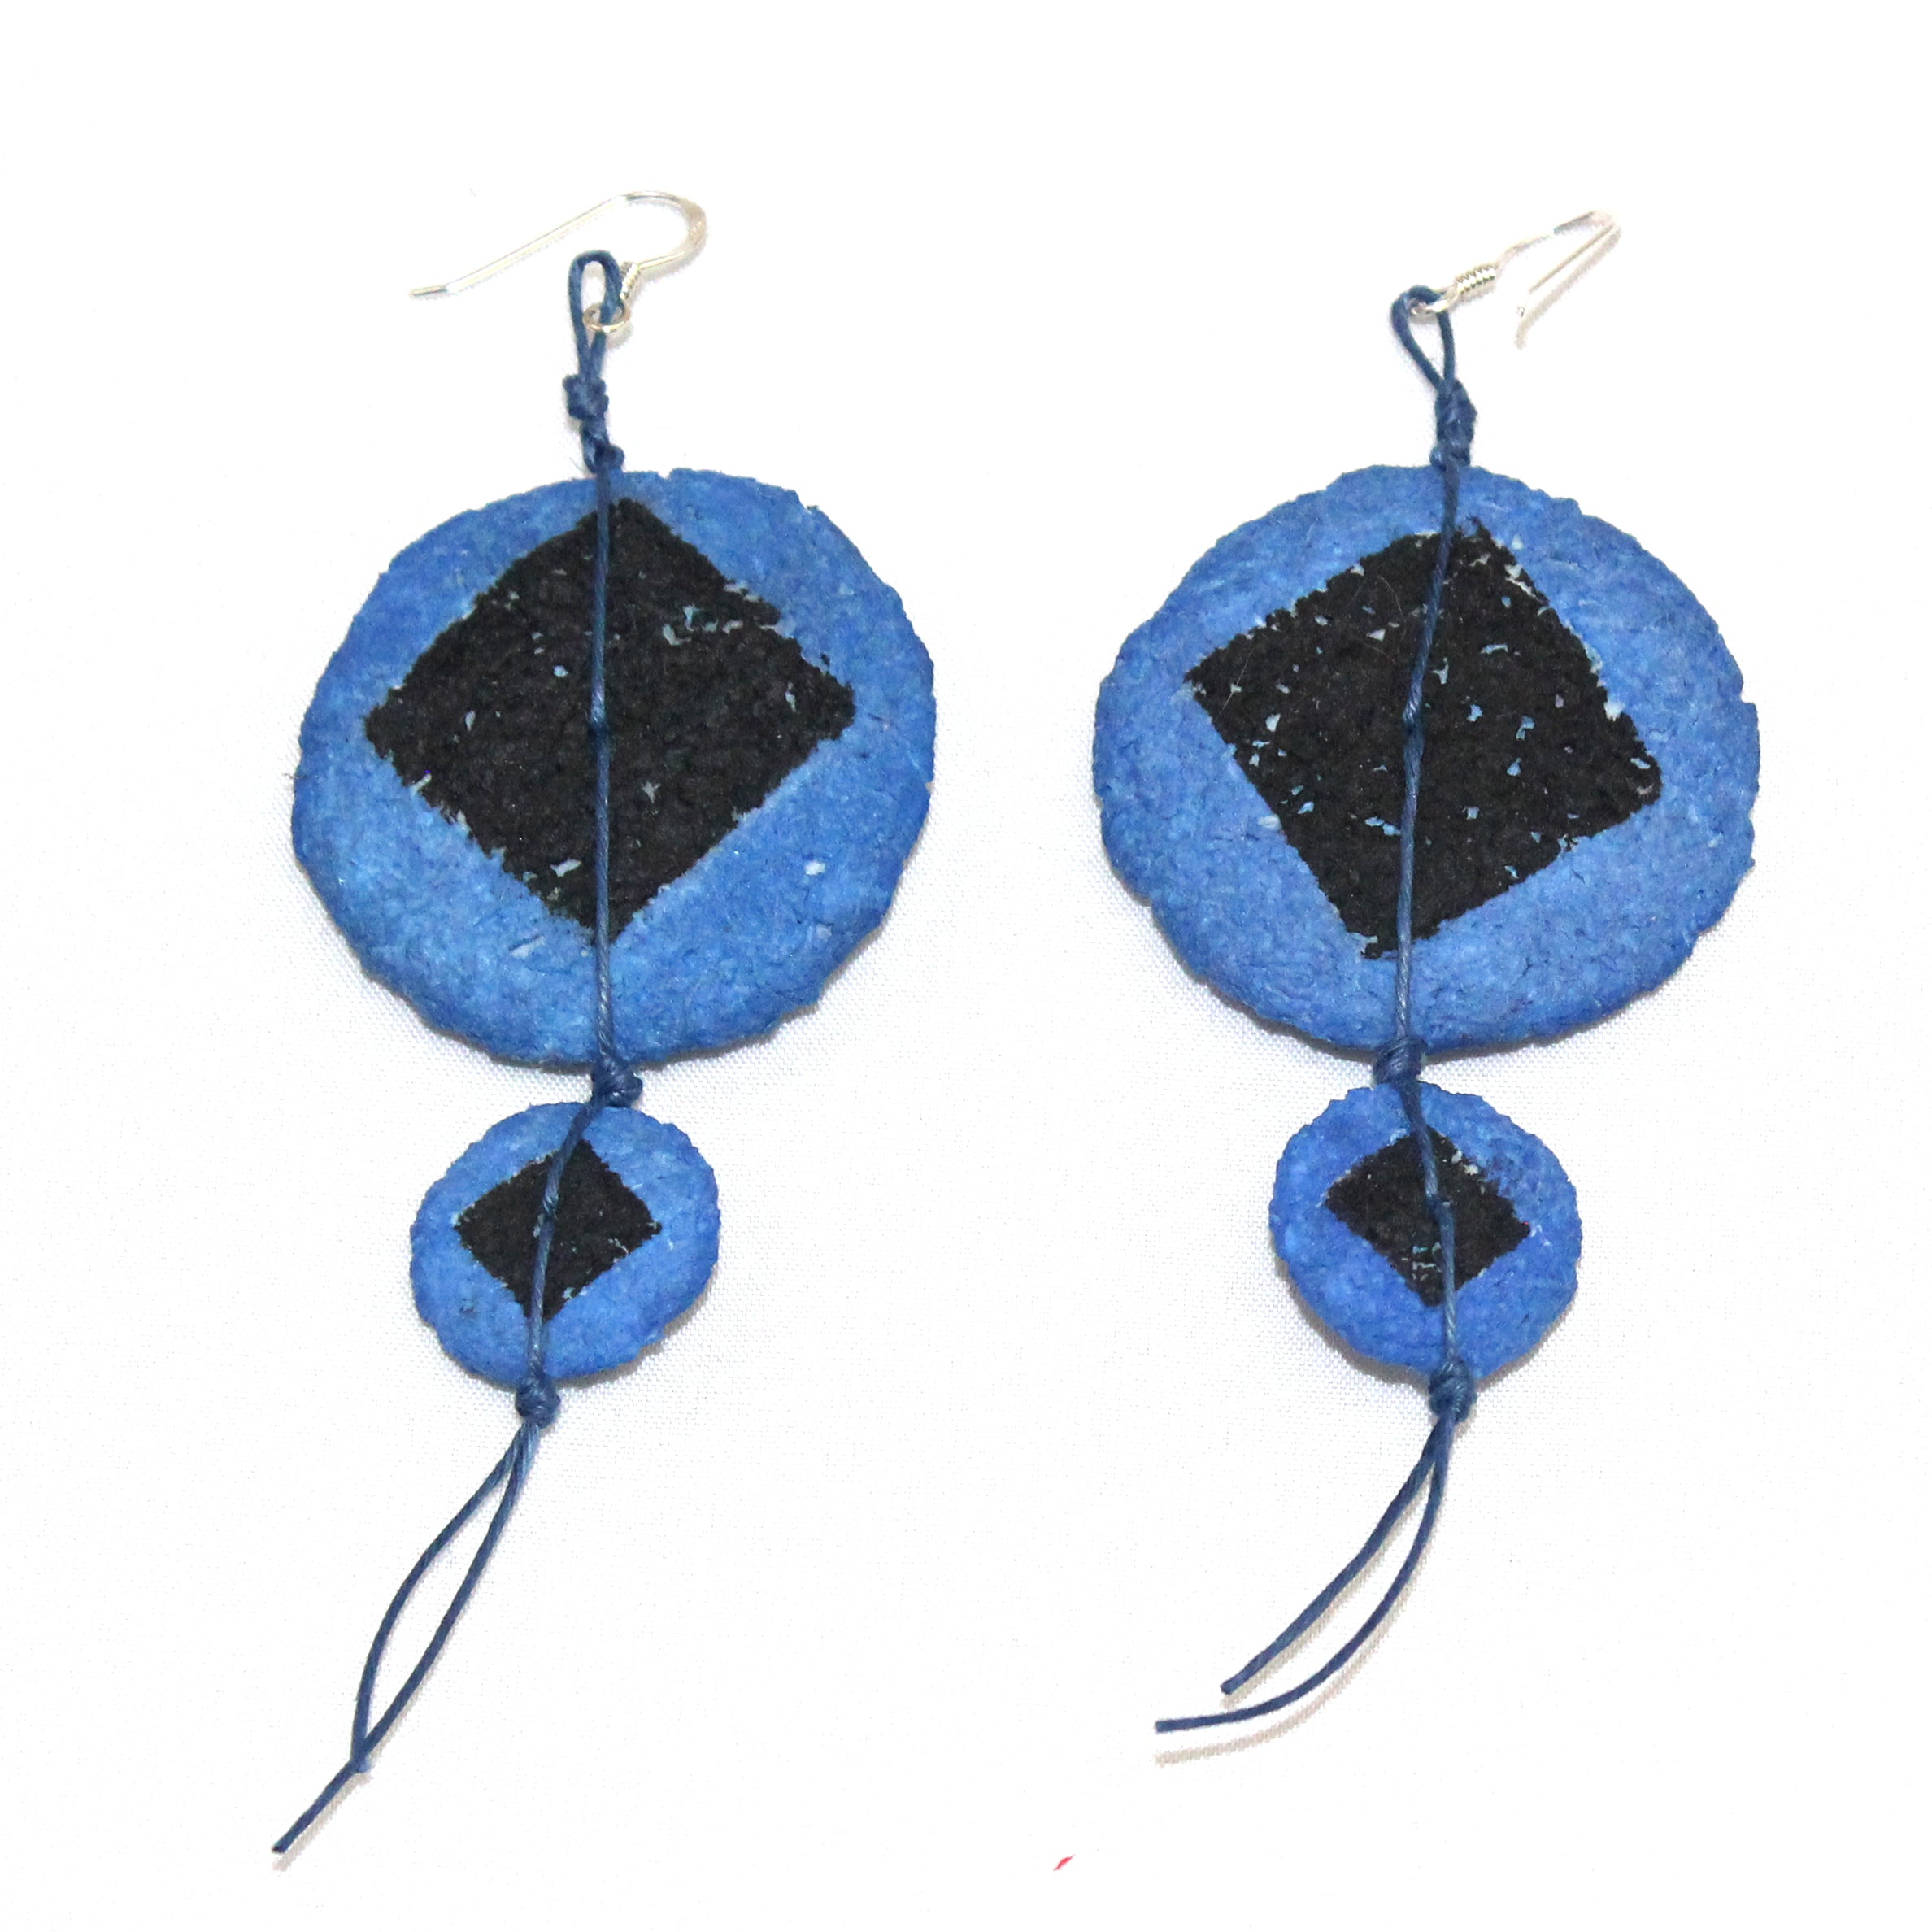 Begona Rentero Earrings, Nu Assoupie, Colbalt Blue